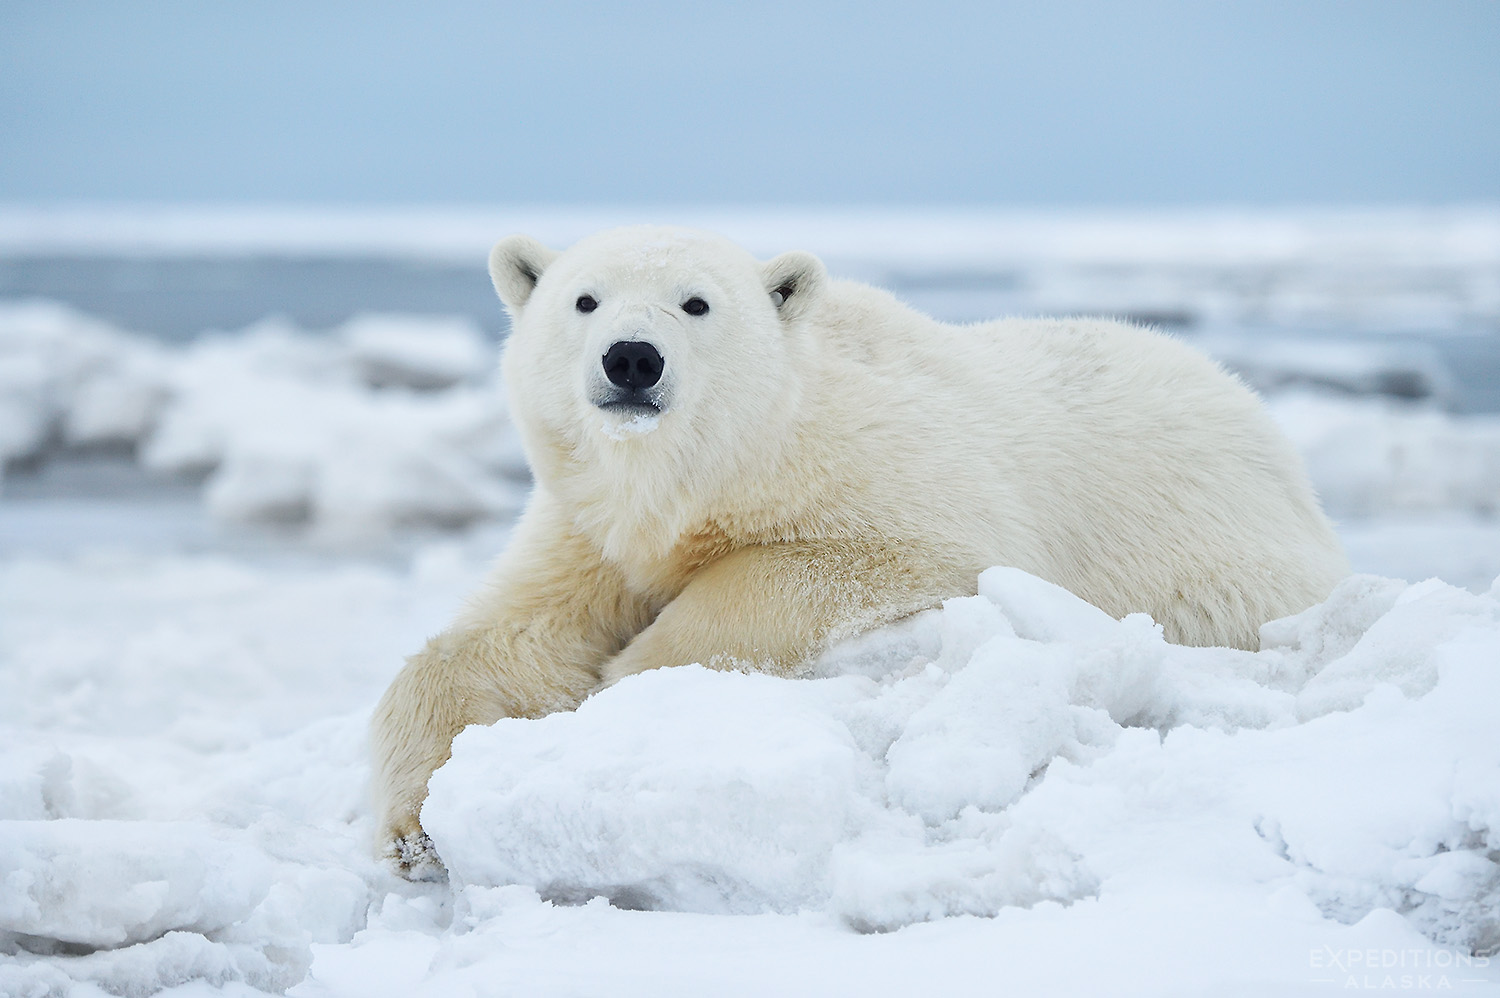 A young polar bear resting